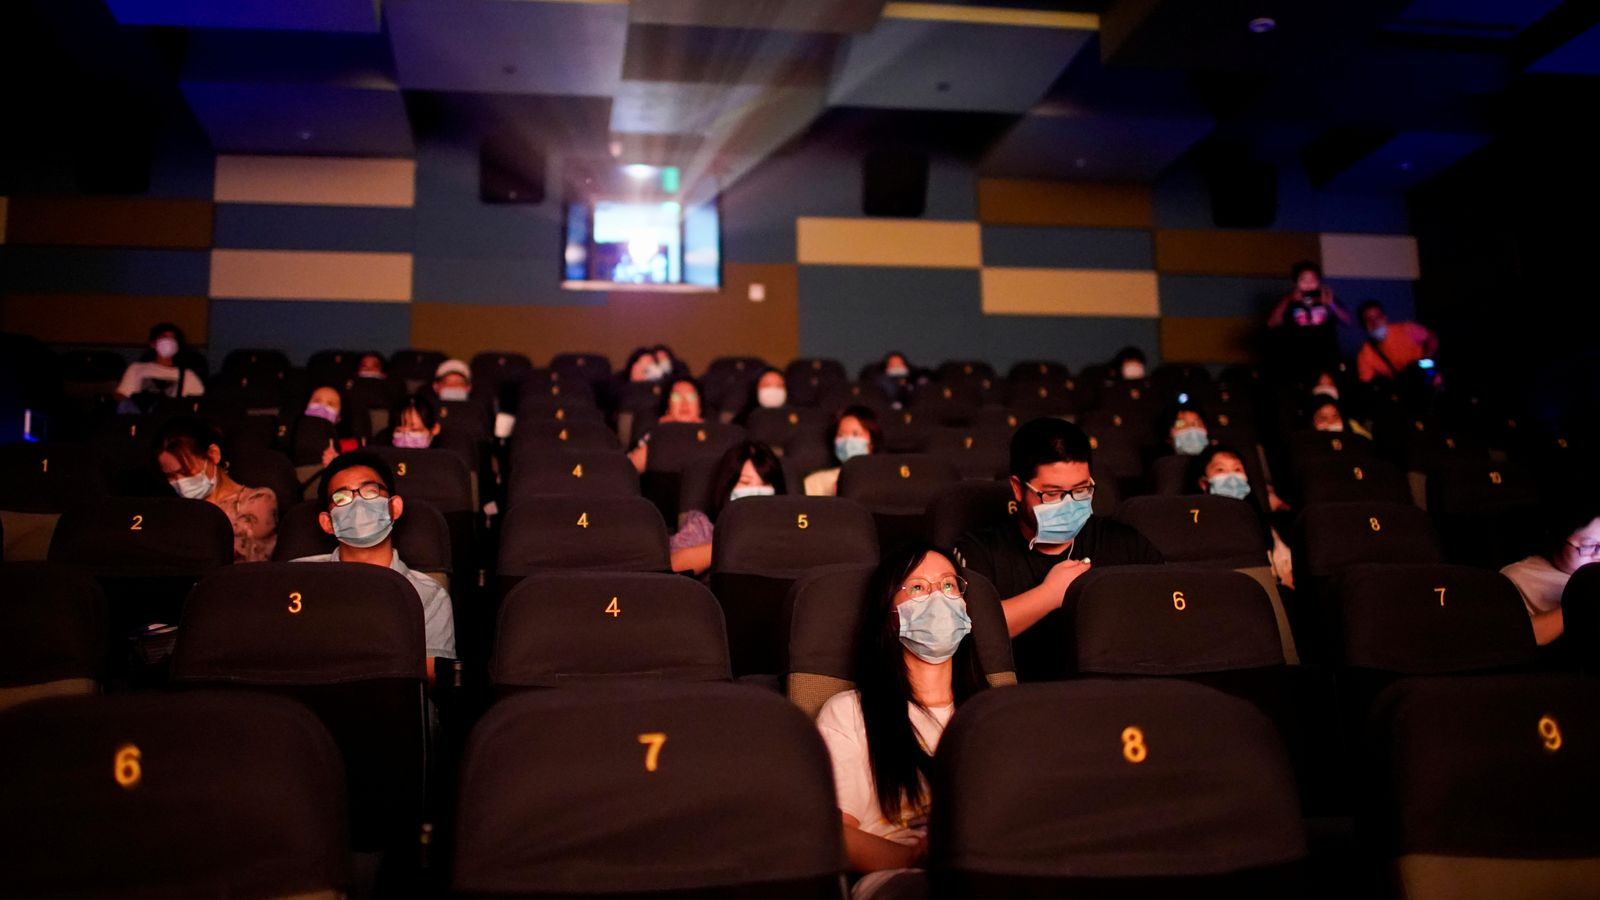 China overtakes US as world's biggest movie box office in 2020